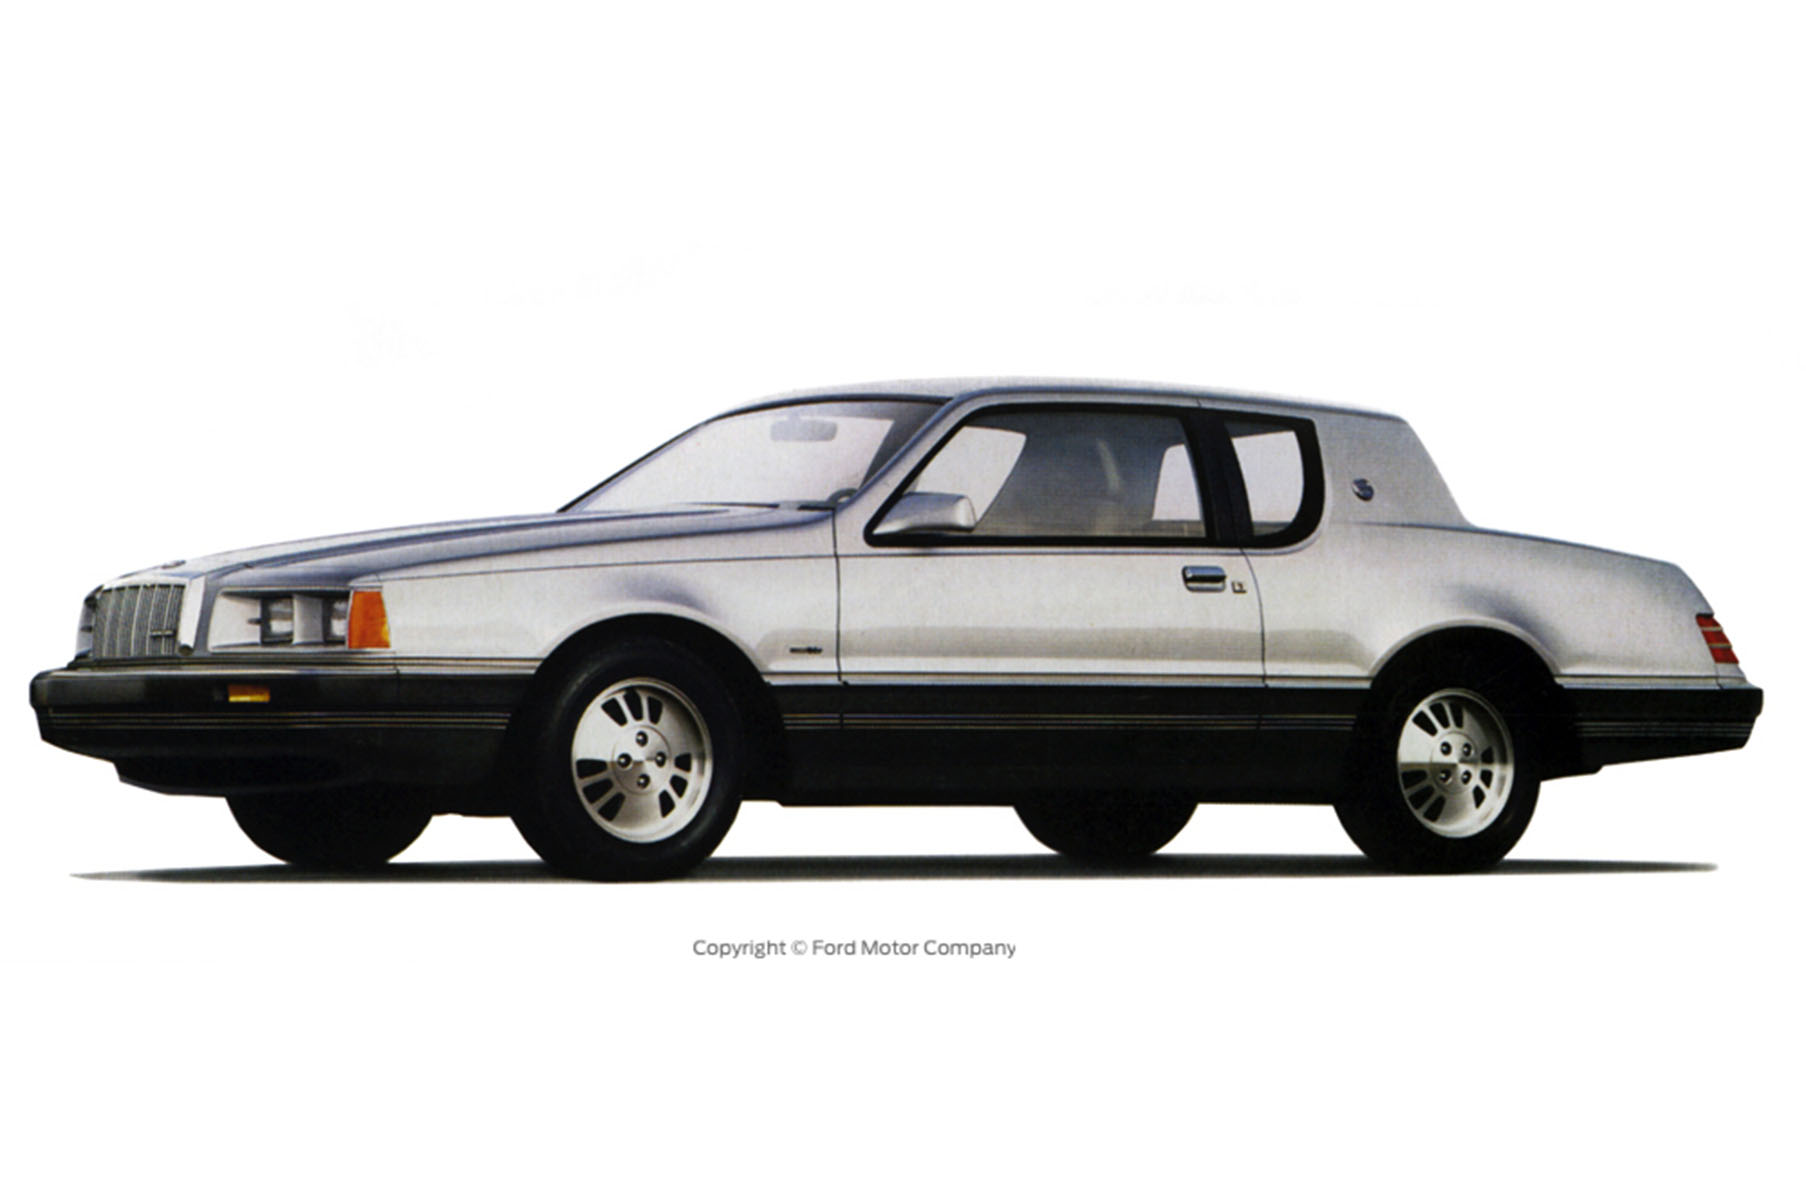 Muscle Cars You Should Know: Mercury Cougar